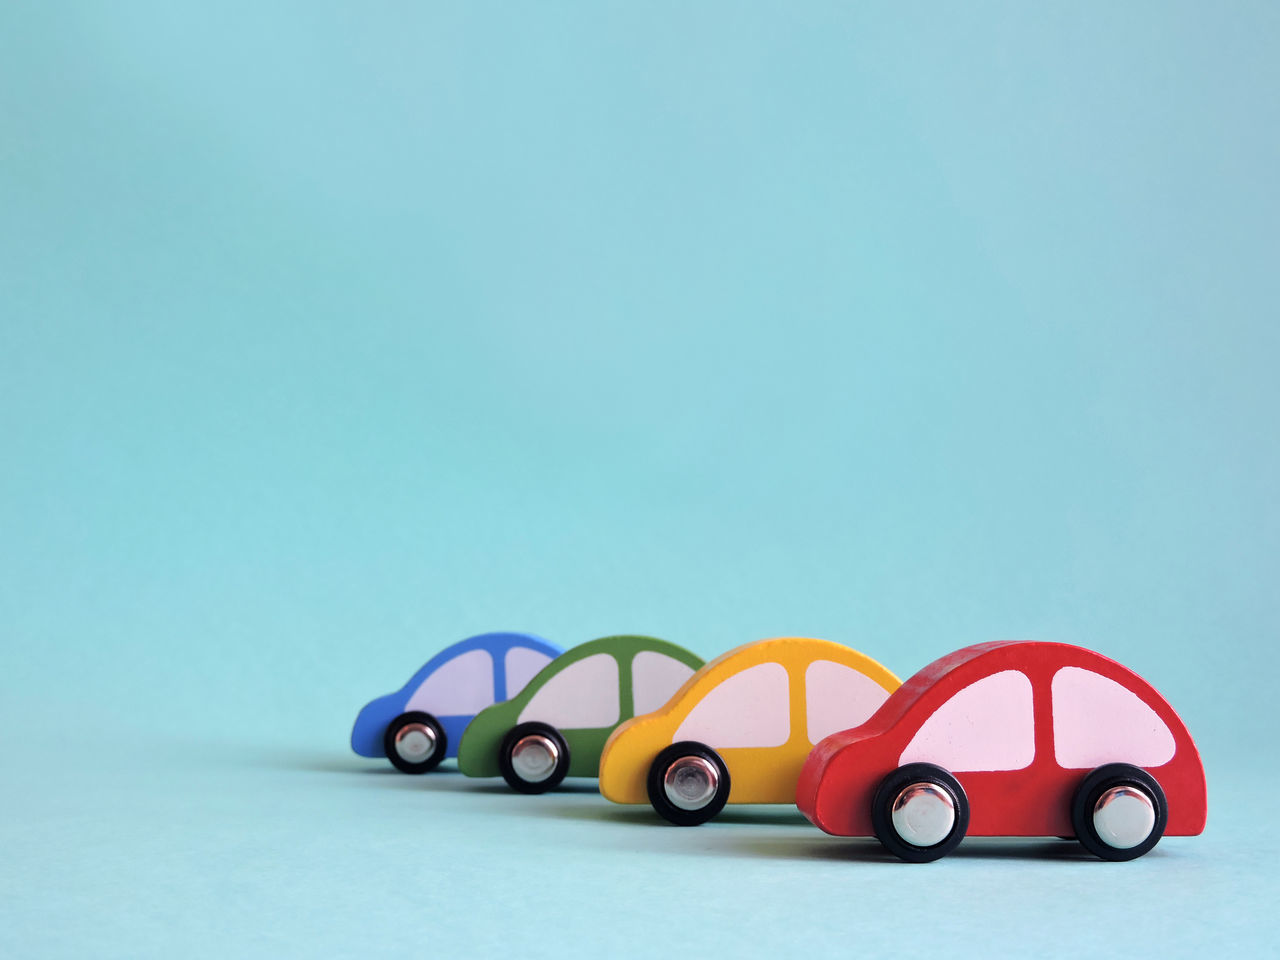 Blue Blue Background Car Classic Colourful Generic Green In A Row LINE Lined Up Minimal Painted Red Row Studio Toy Wooden Yellow